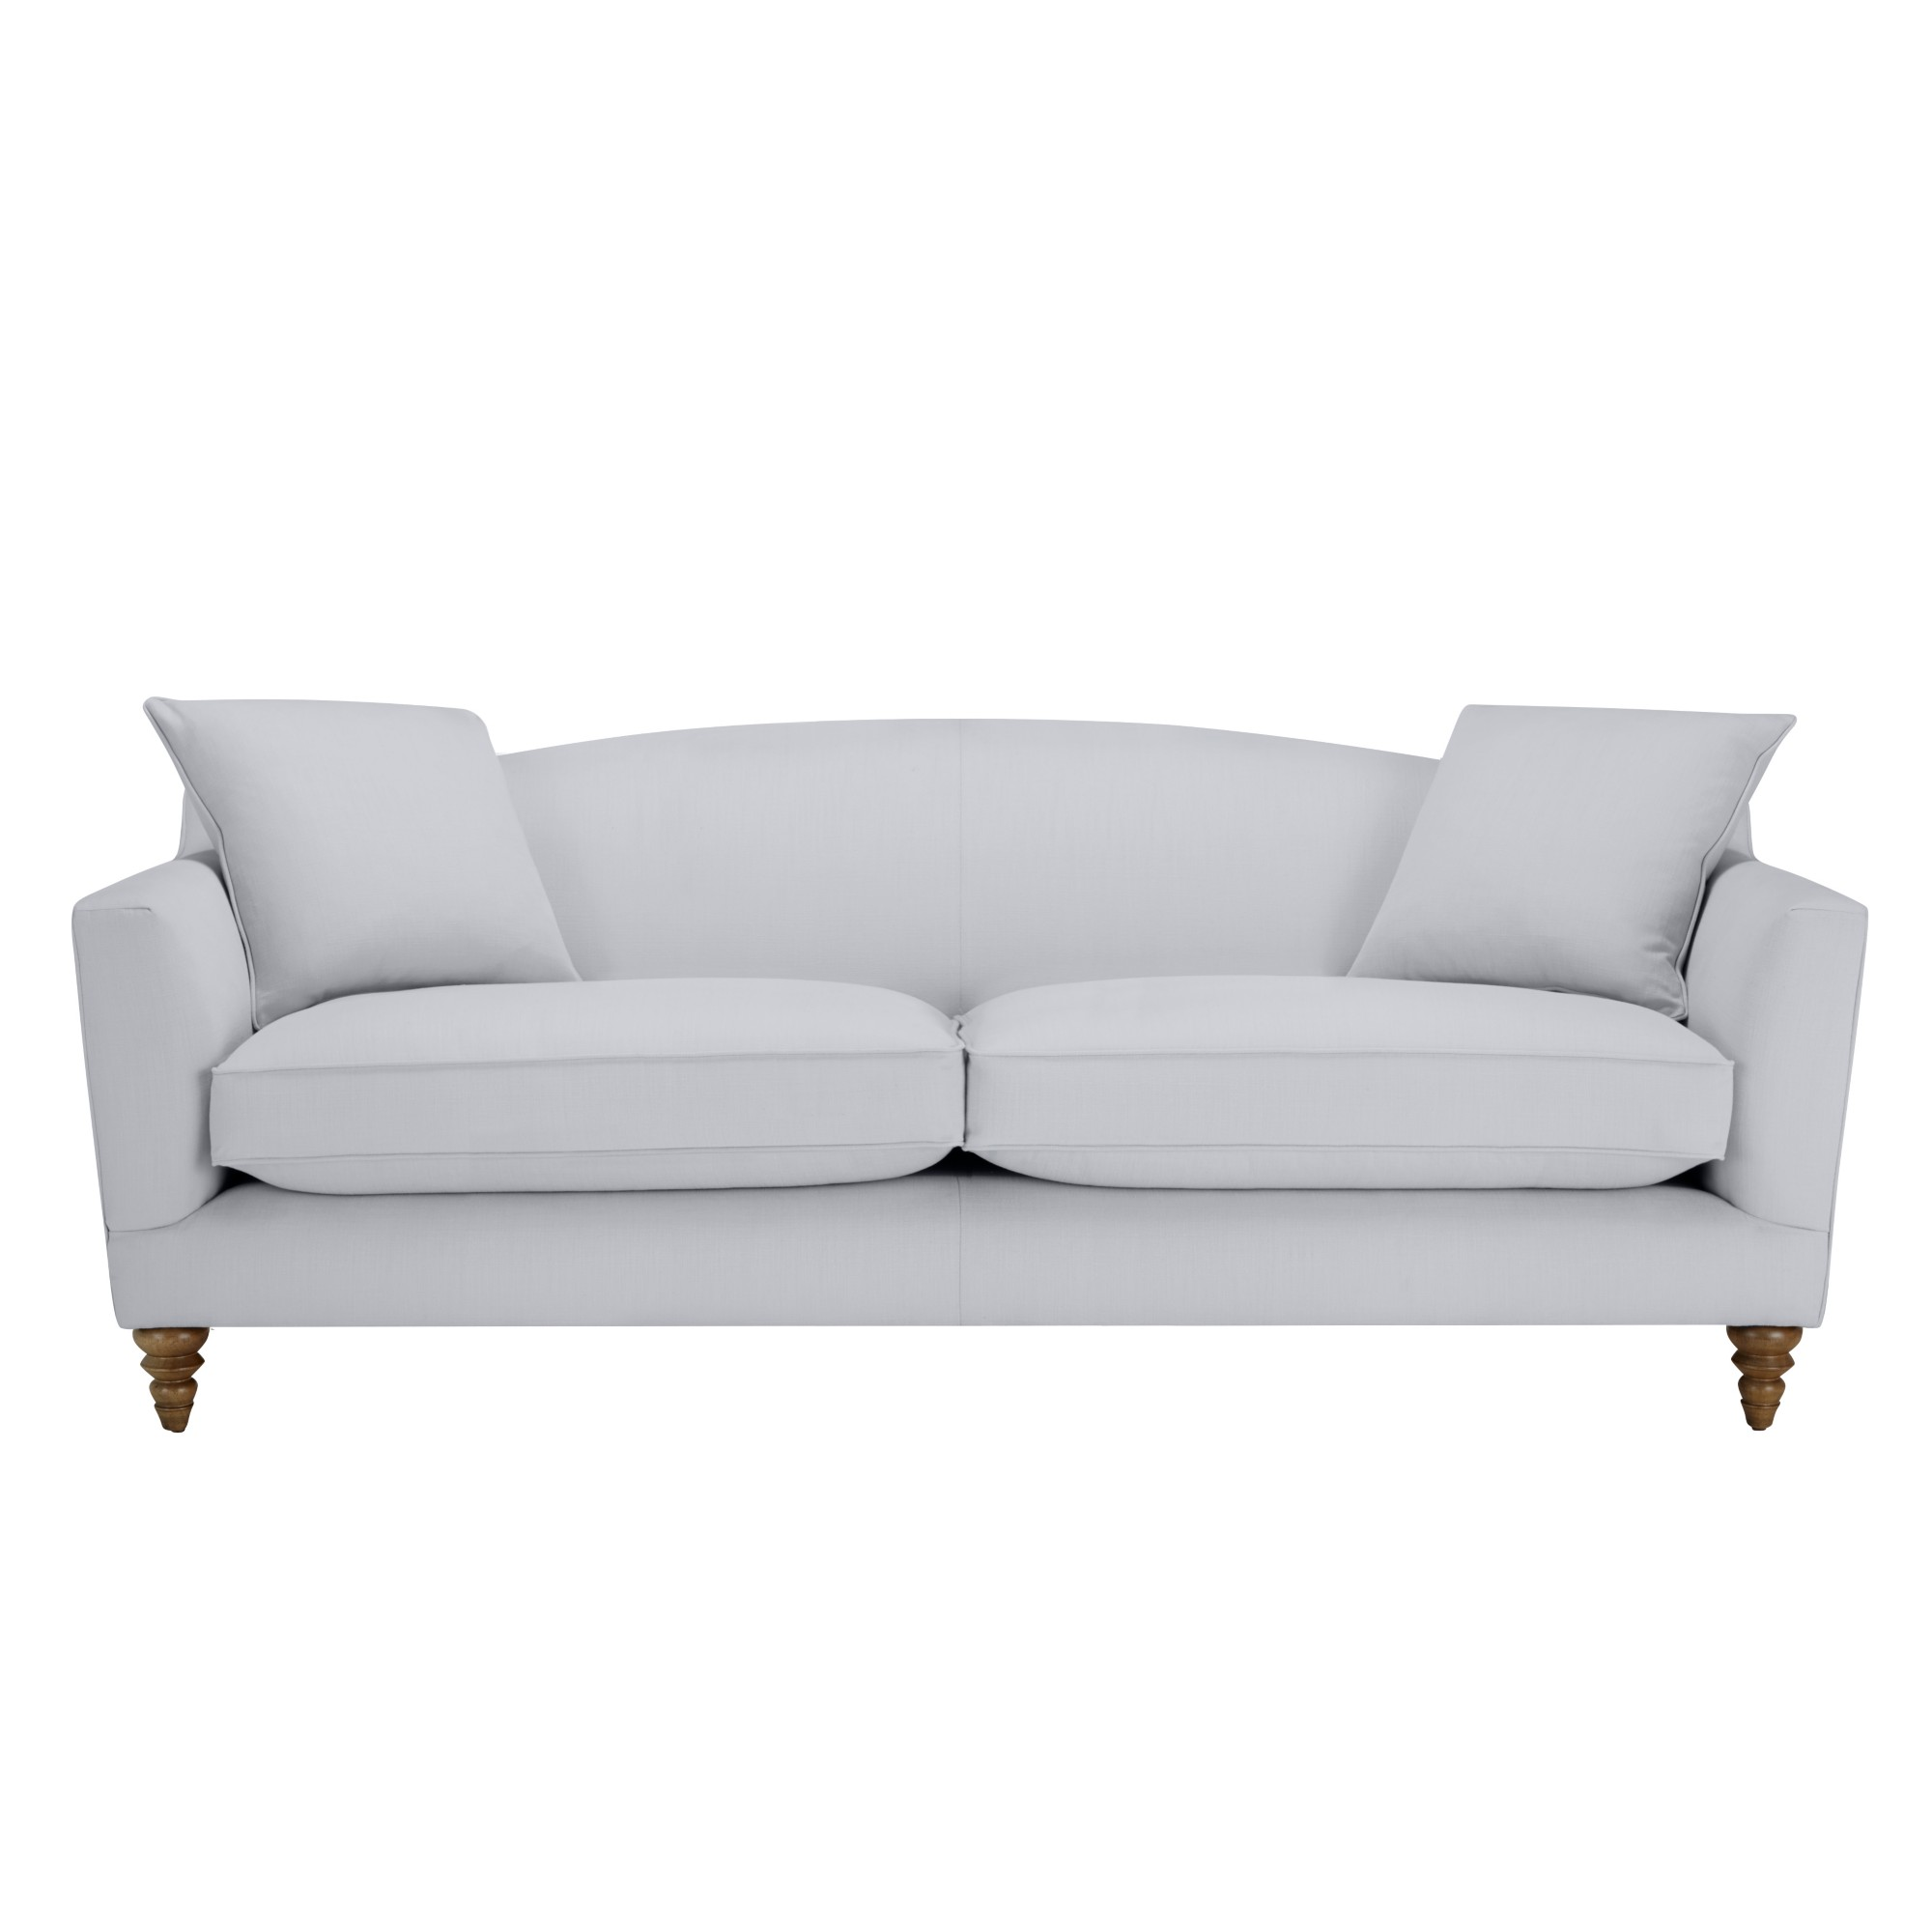 sofa covers low price high end sectional brands john lewis melrose fixed cover grand review best